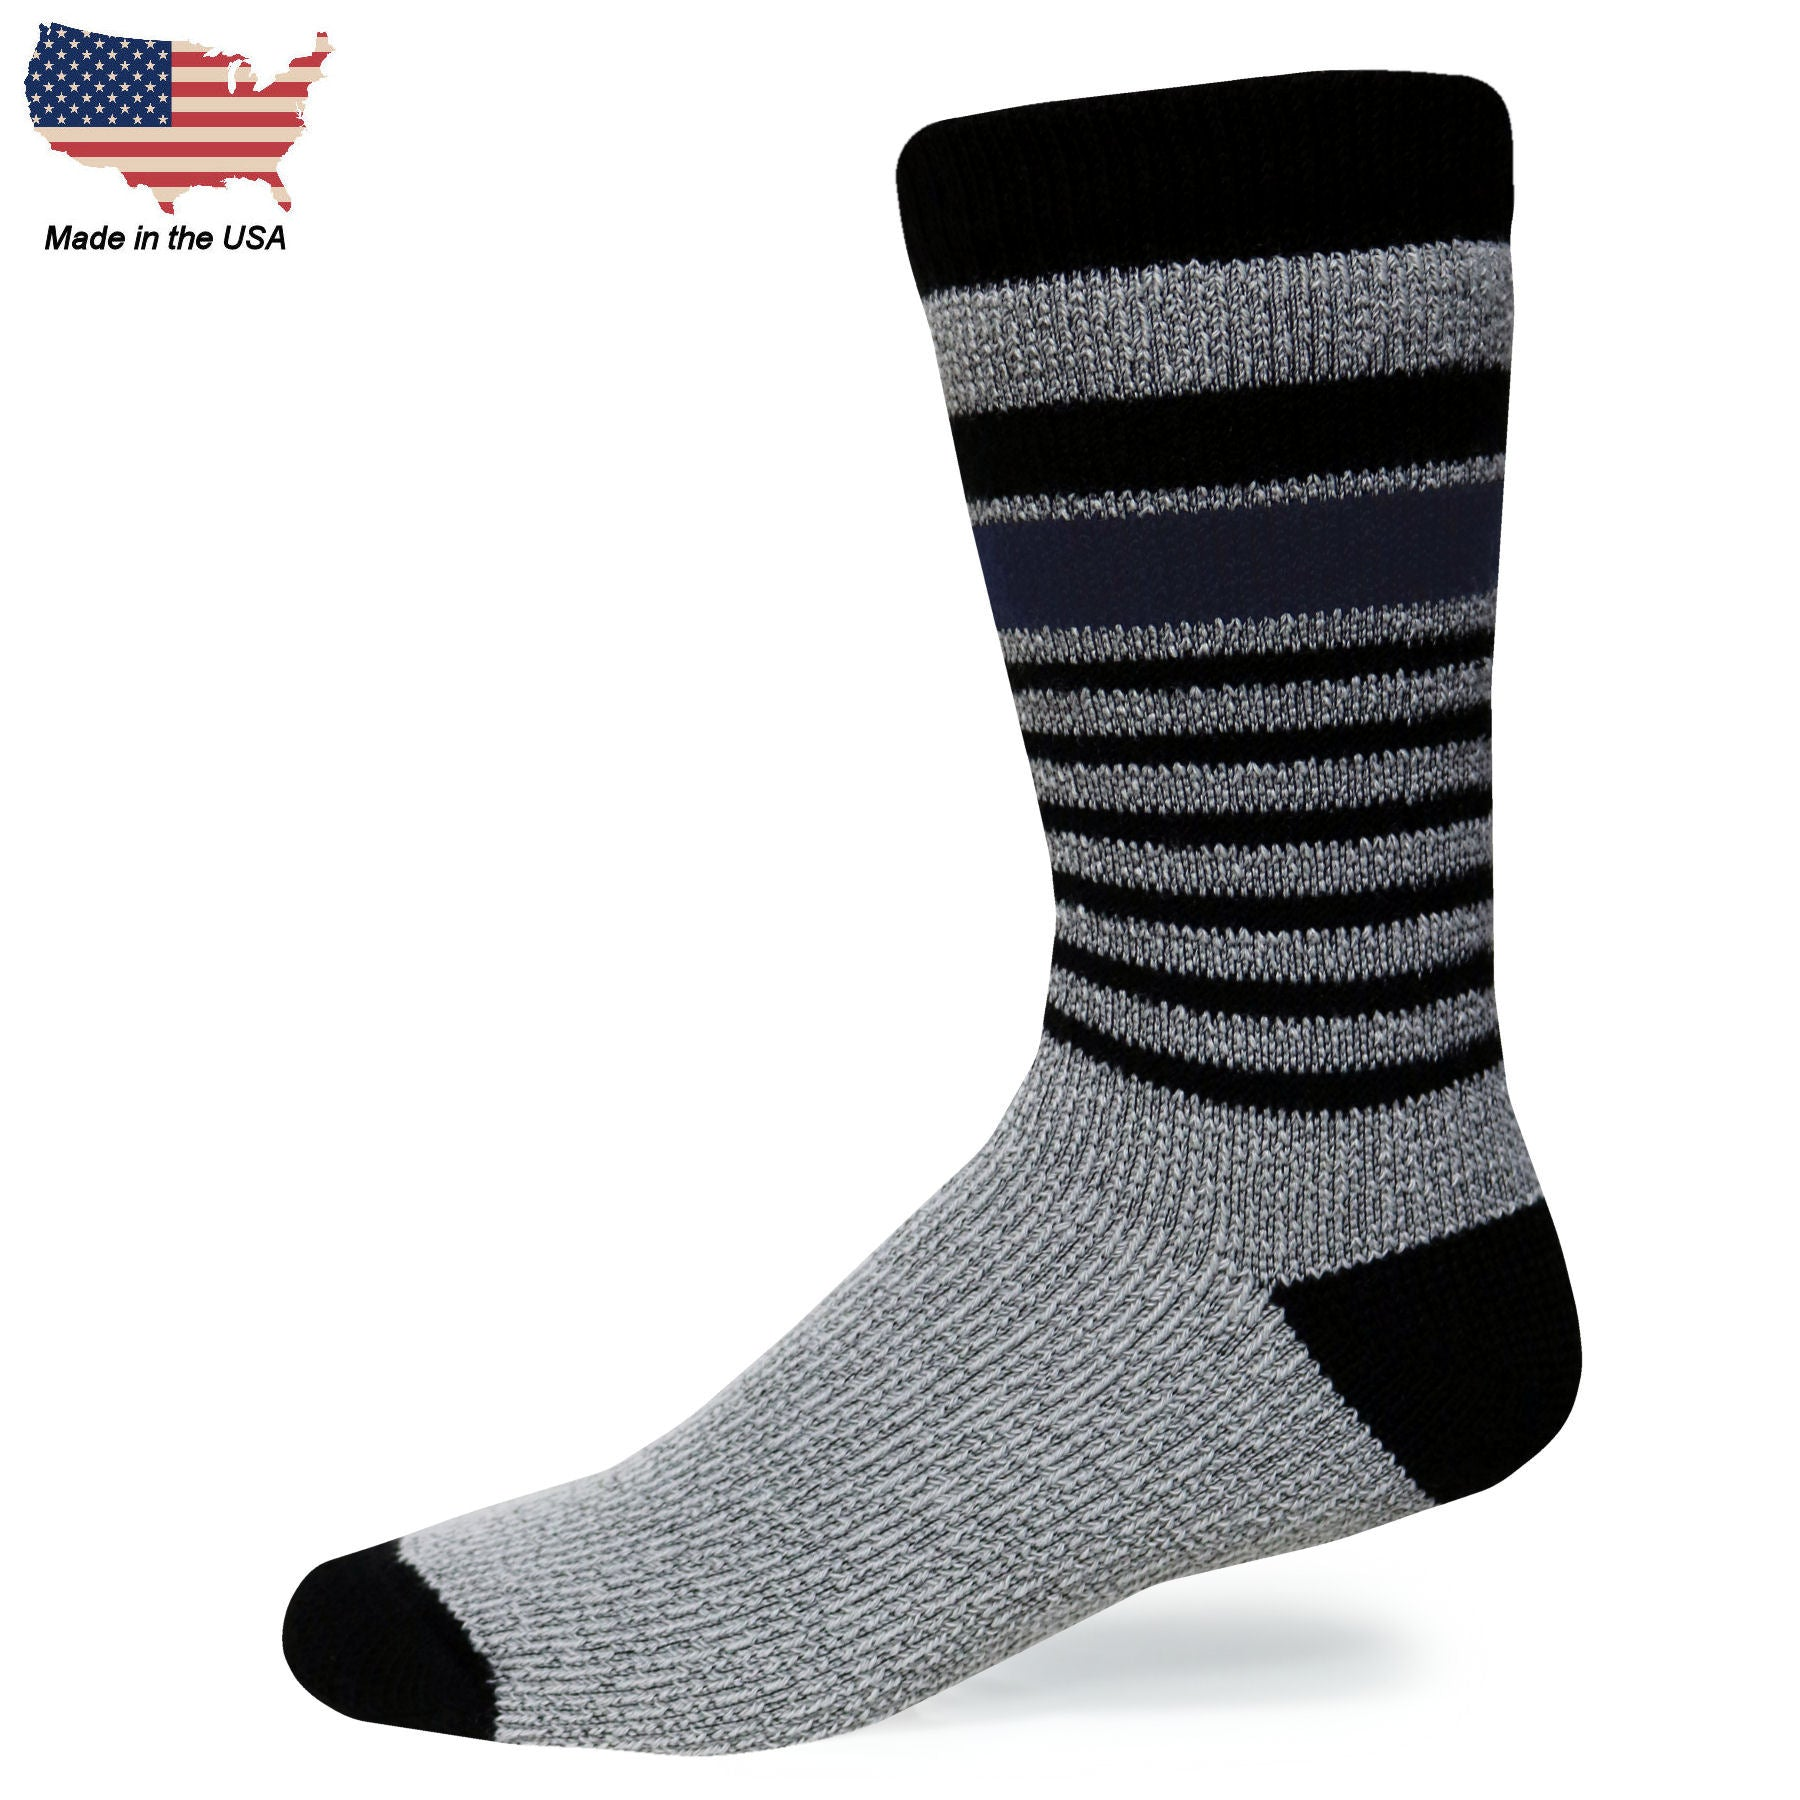 Foot Comfort Cozy Granite Crew Socks